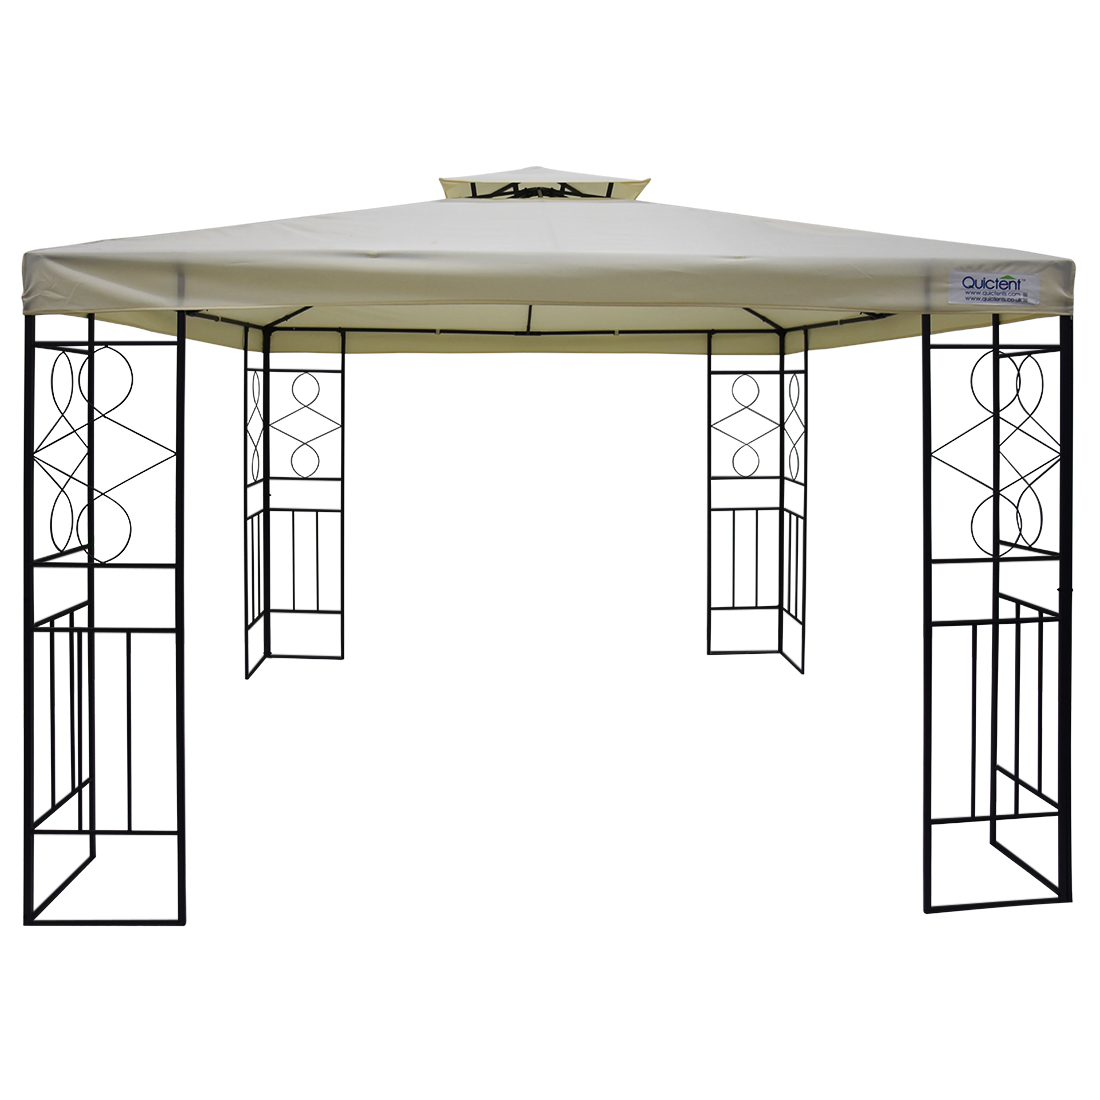 Quictent Metal Gazebo 10x10 ft Grill Gazebo Canopy Double Tier Roof Waterproof